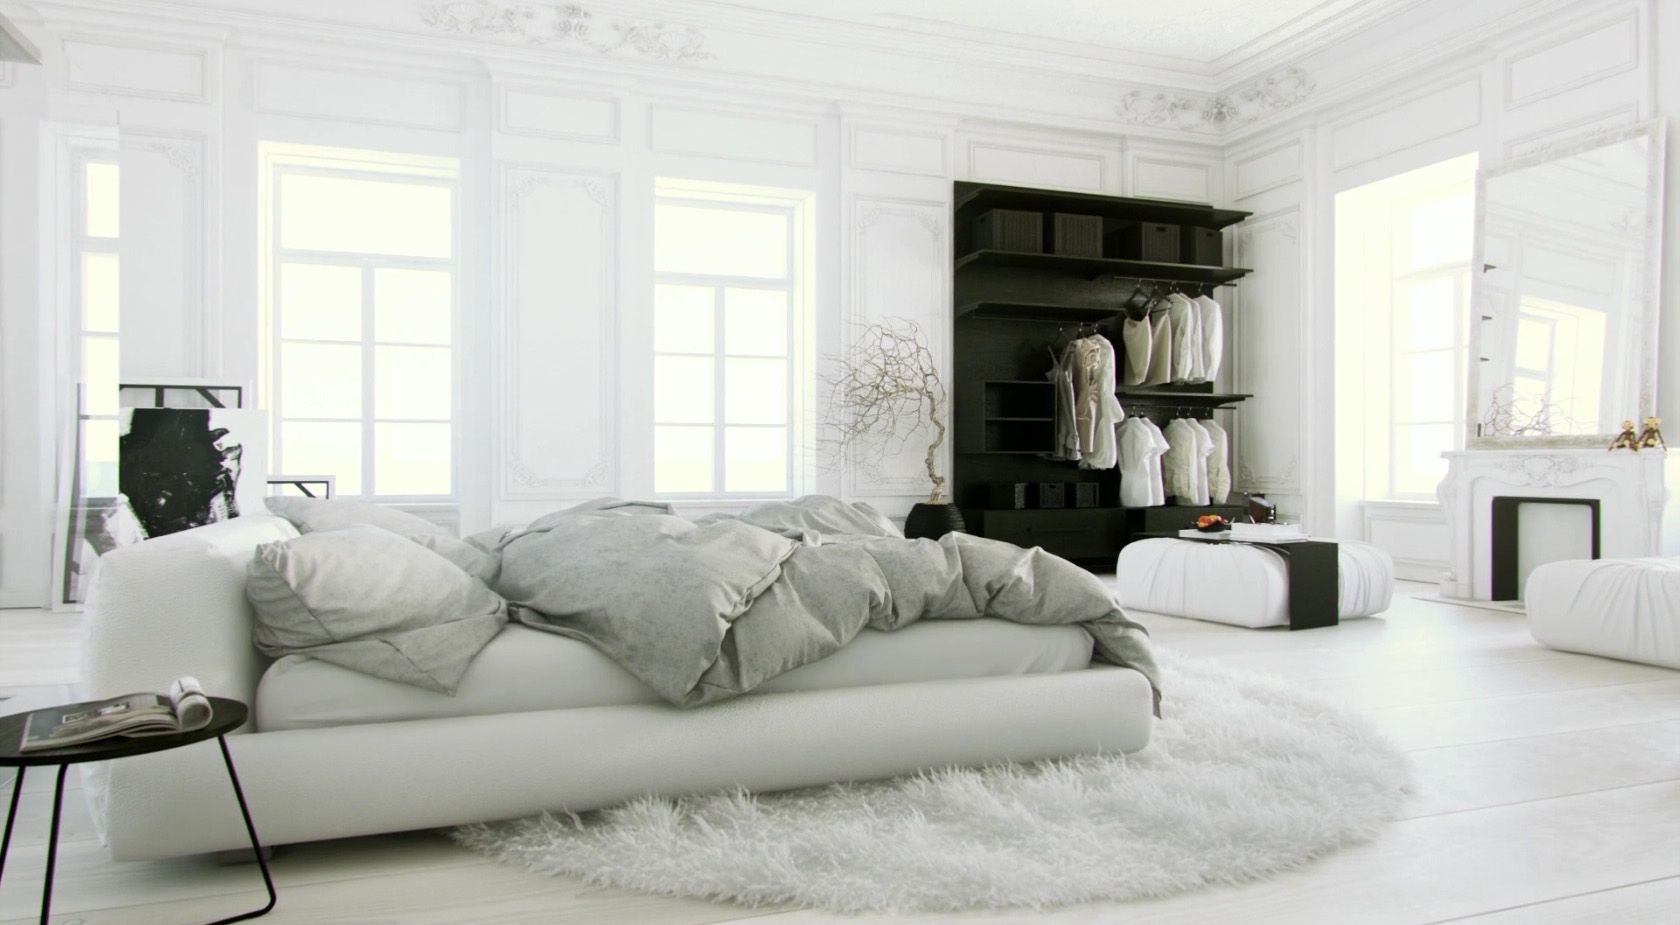 All white bedroom design ideas for 3 bedroom design ideas